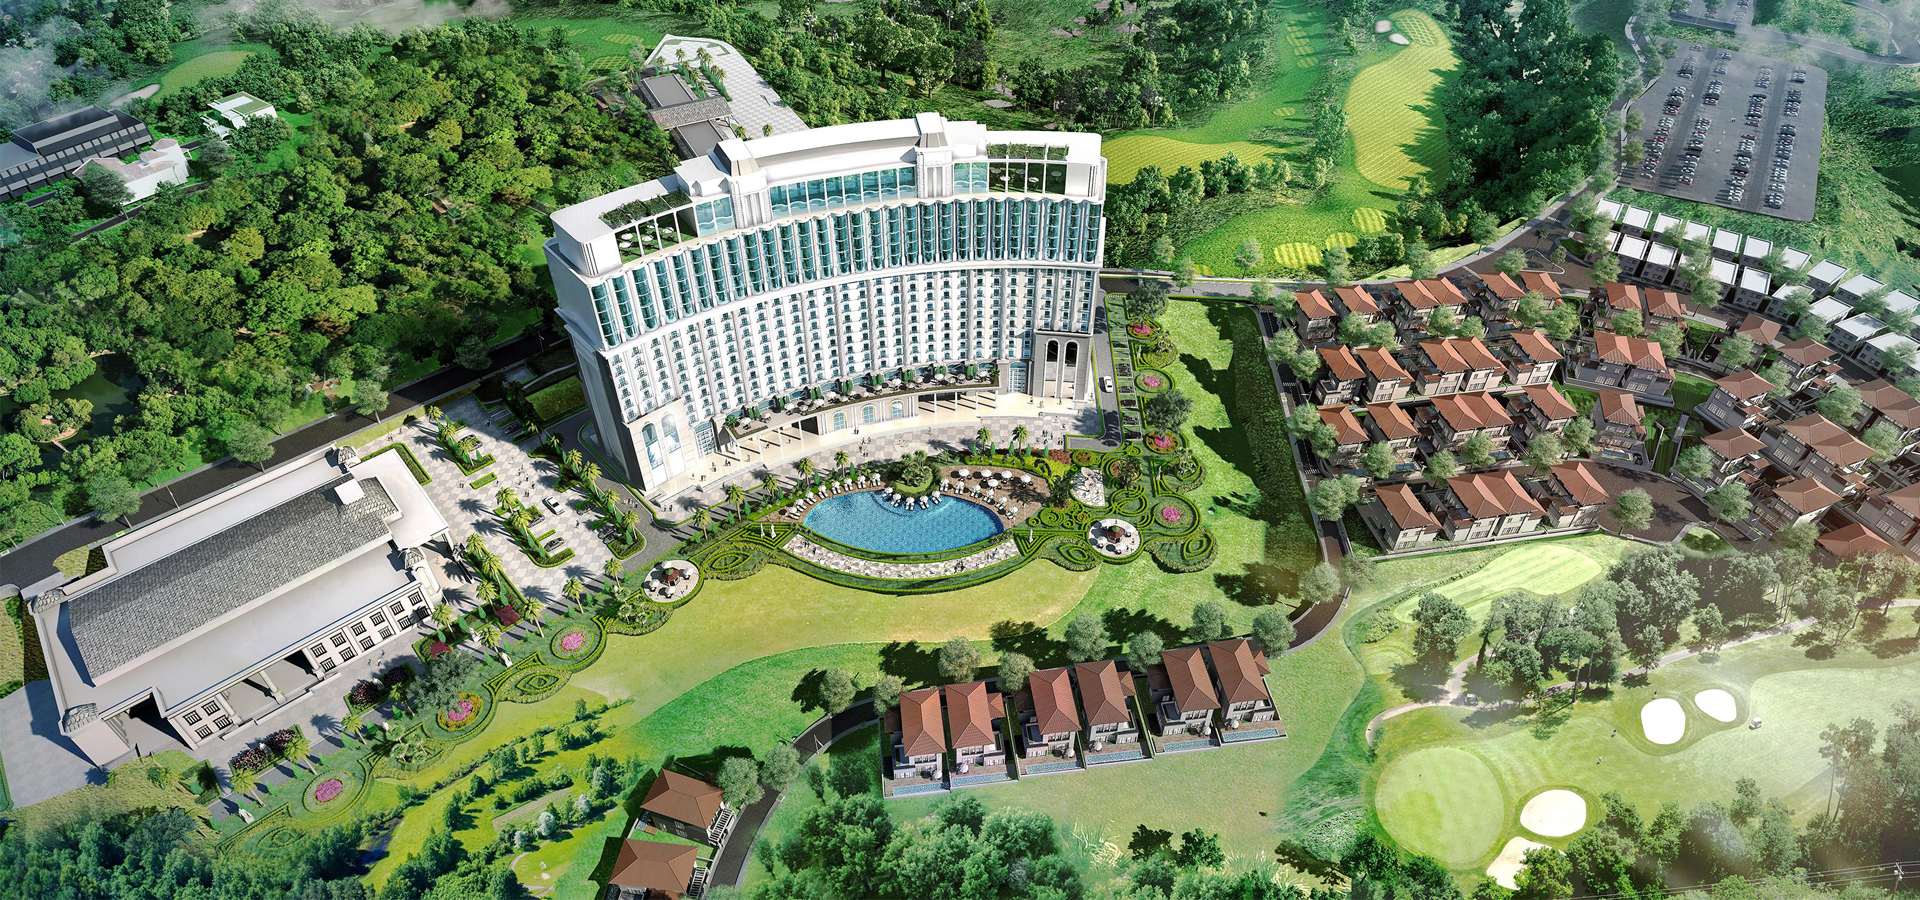 FLC Halong Bay Golf Club & Luxury Resort (FLC Ha Long) is one of the few resort projects that owns a prime location when located on a high hill, leaning against a mountain, facing the ocean.